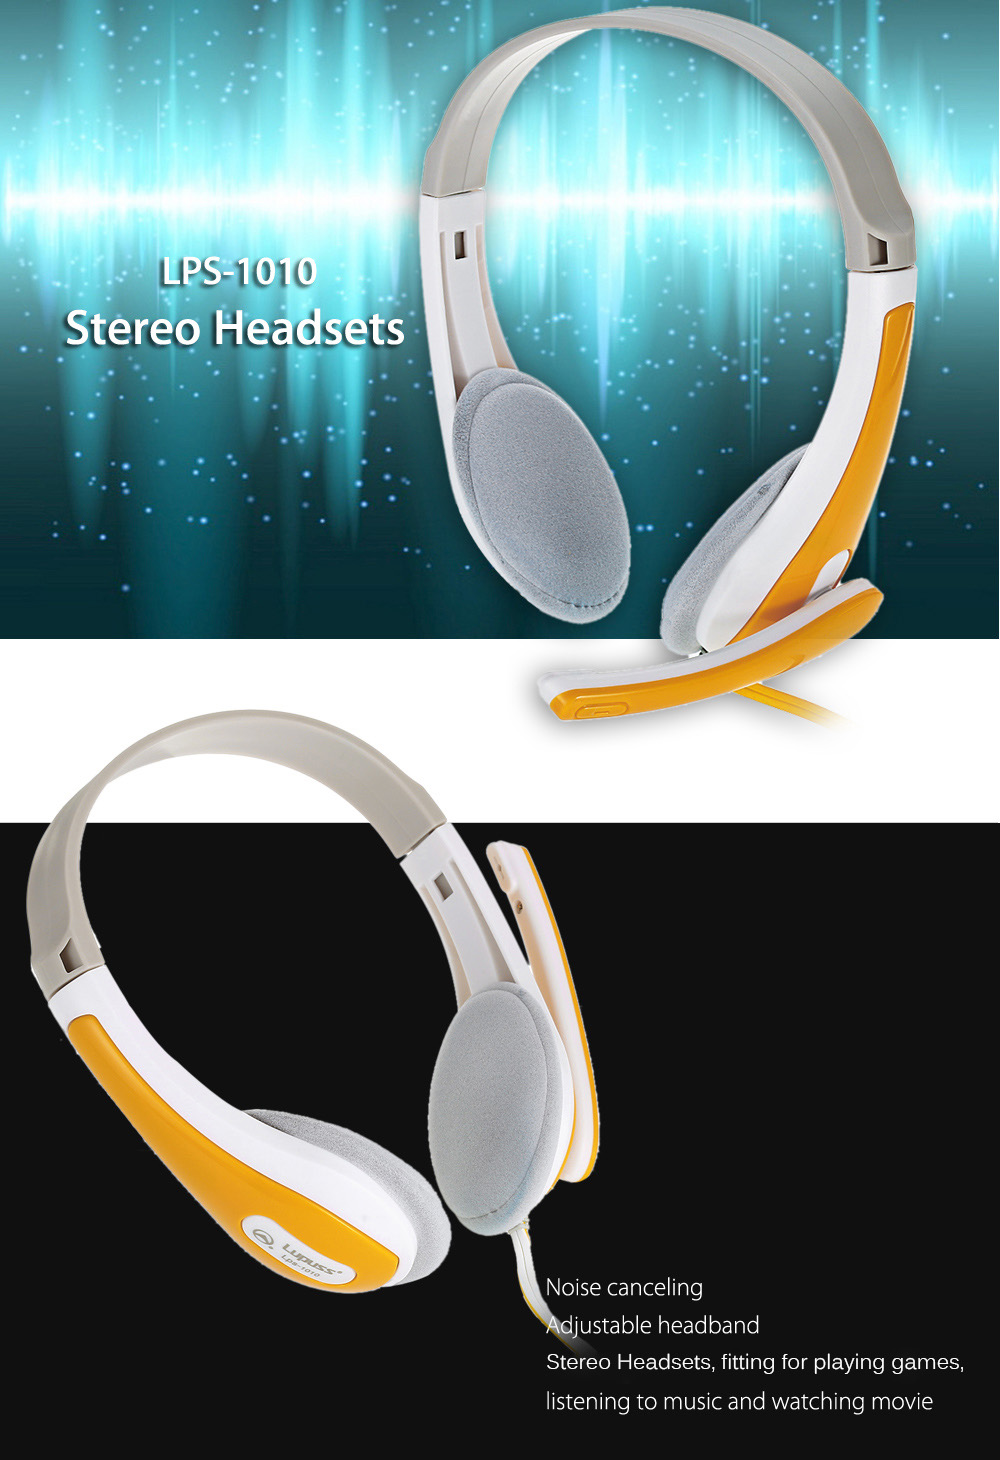 LPS - 1010 Stereo Headsets with Adjustable Headband / Noise Canceling